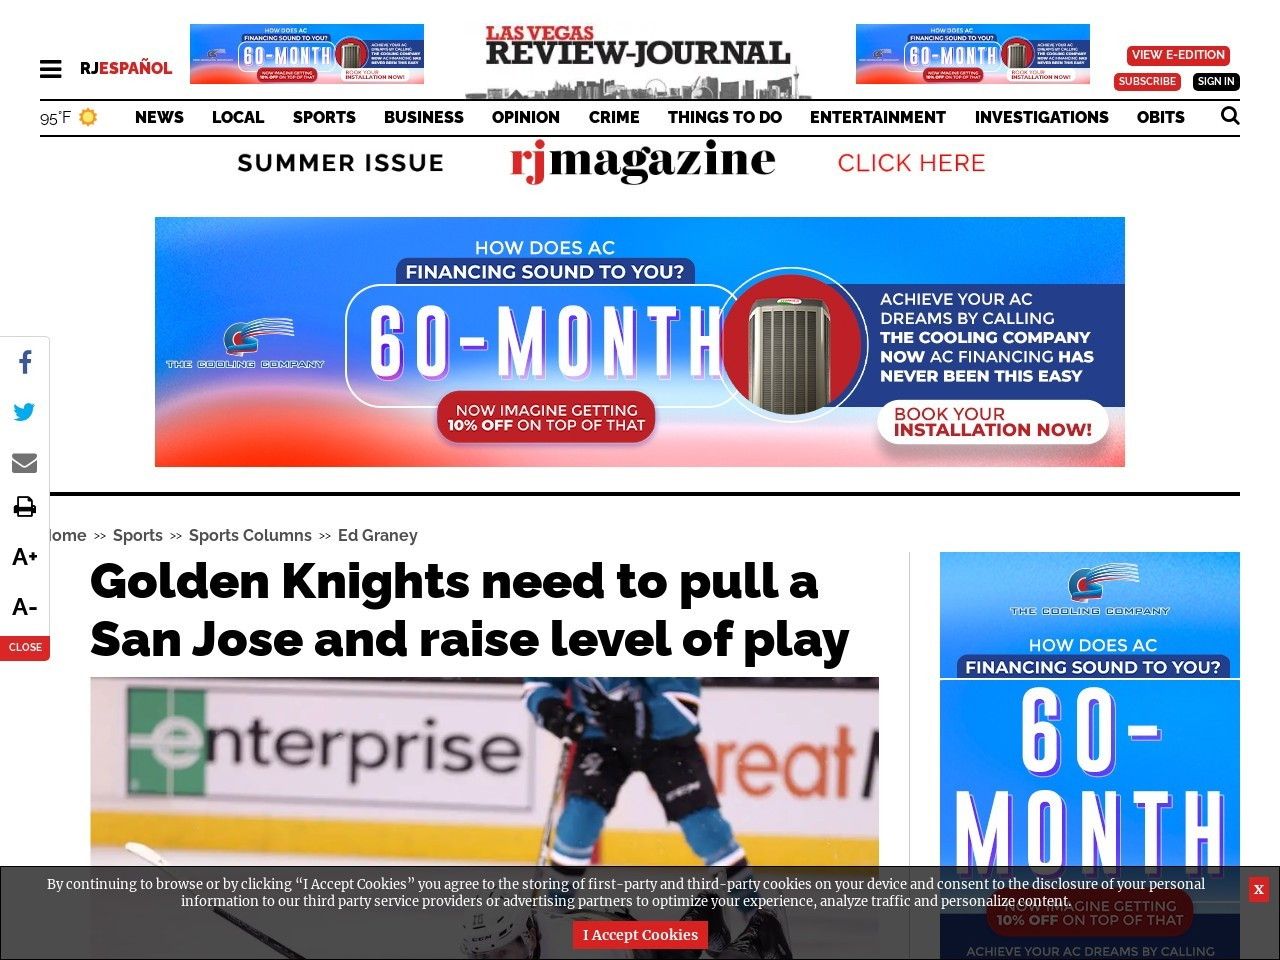 Golden Knights need to pull a San Jose and raise level of play